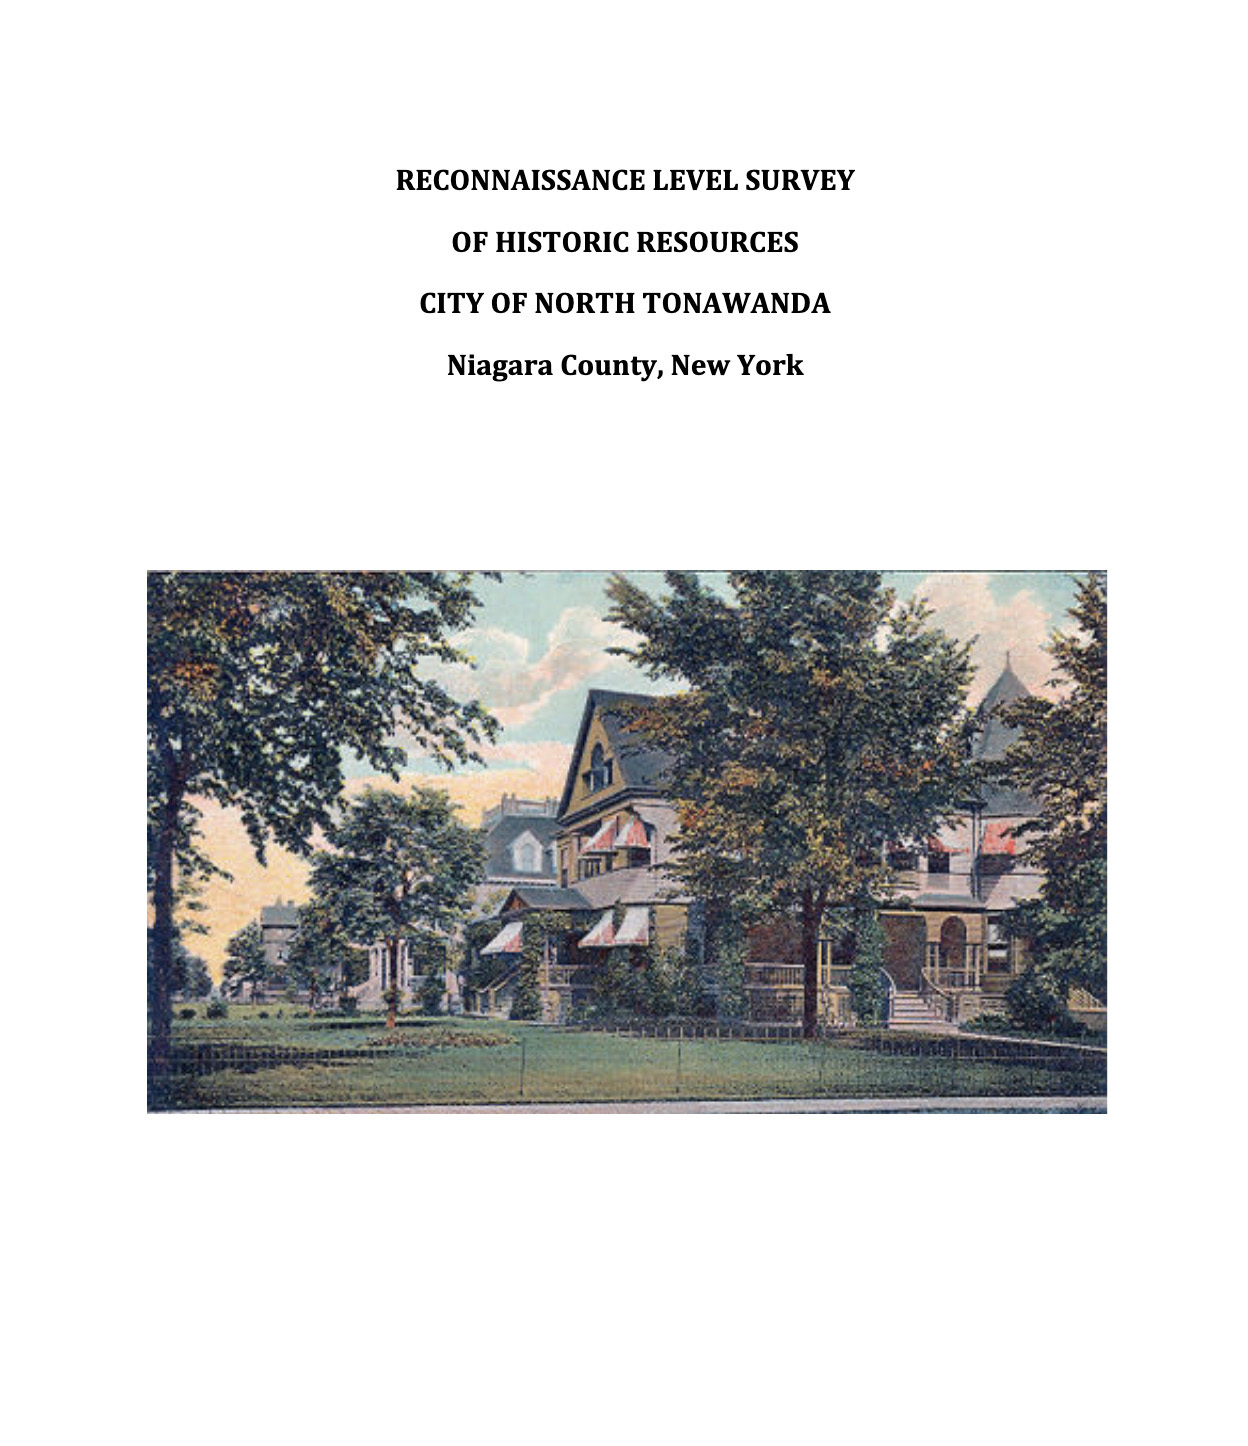 Reconaissance Level Survey of Historic Resources of City of North Tonawanda (kta preservation, 2019) cover.jpg